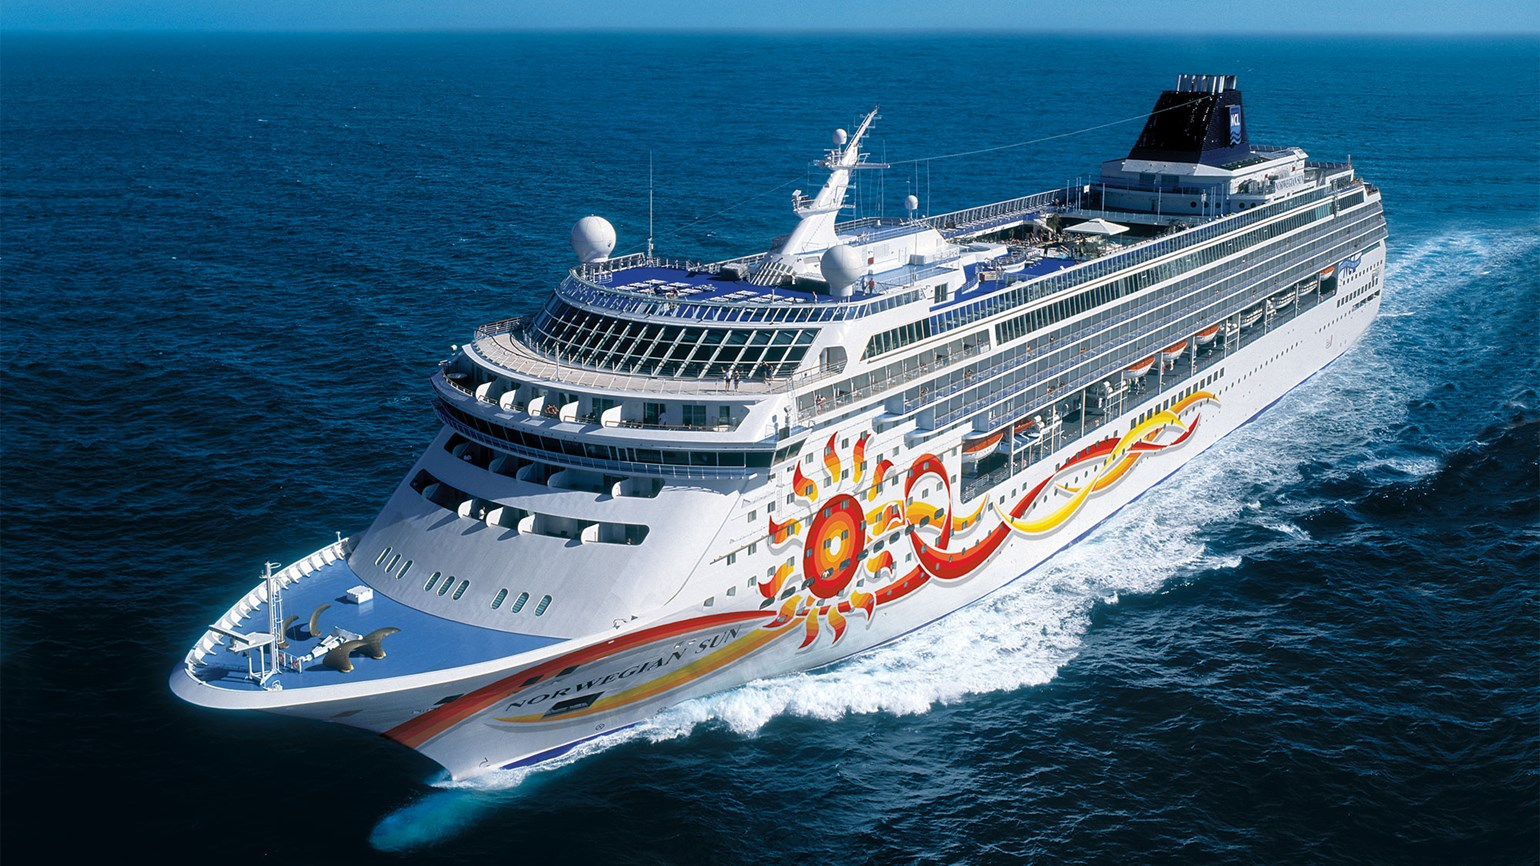 Norwegian Sun's Cuba cruises go on sale with promotion